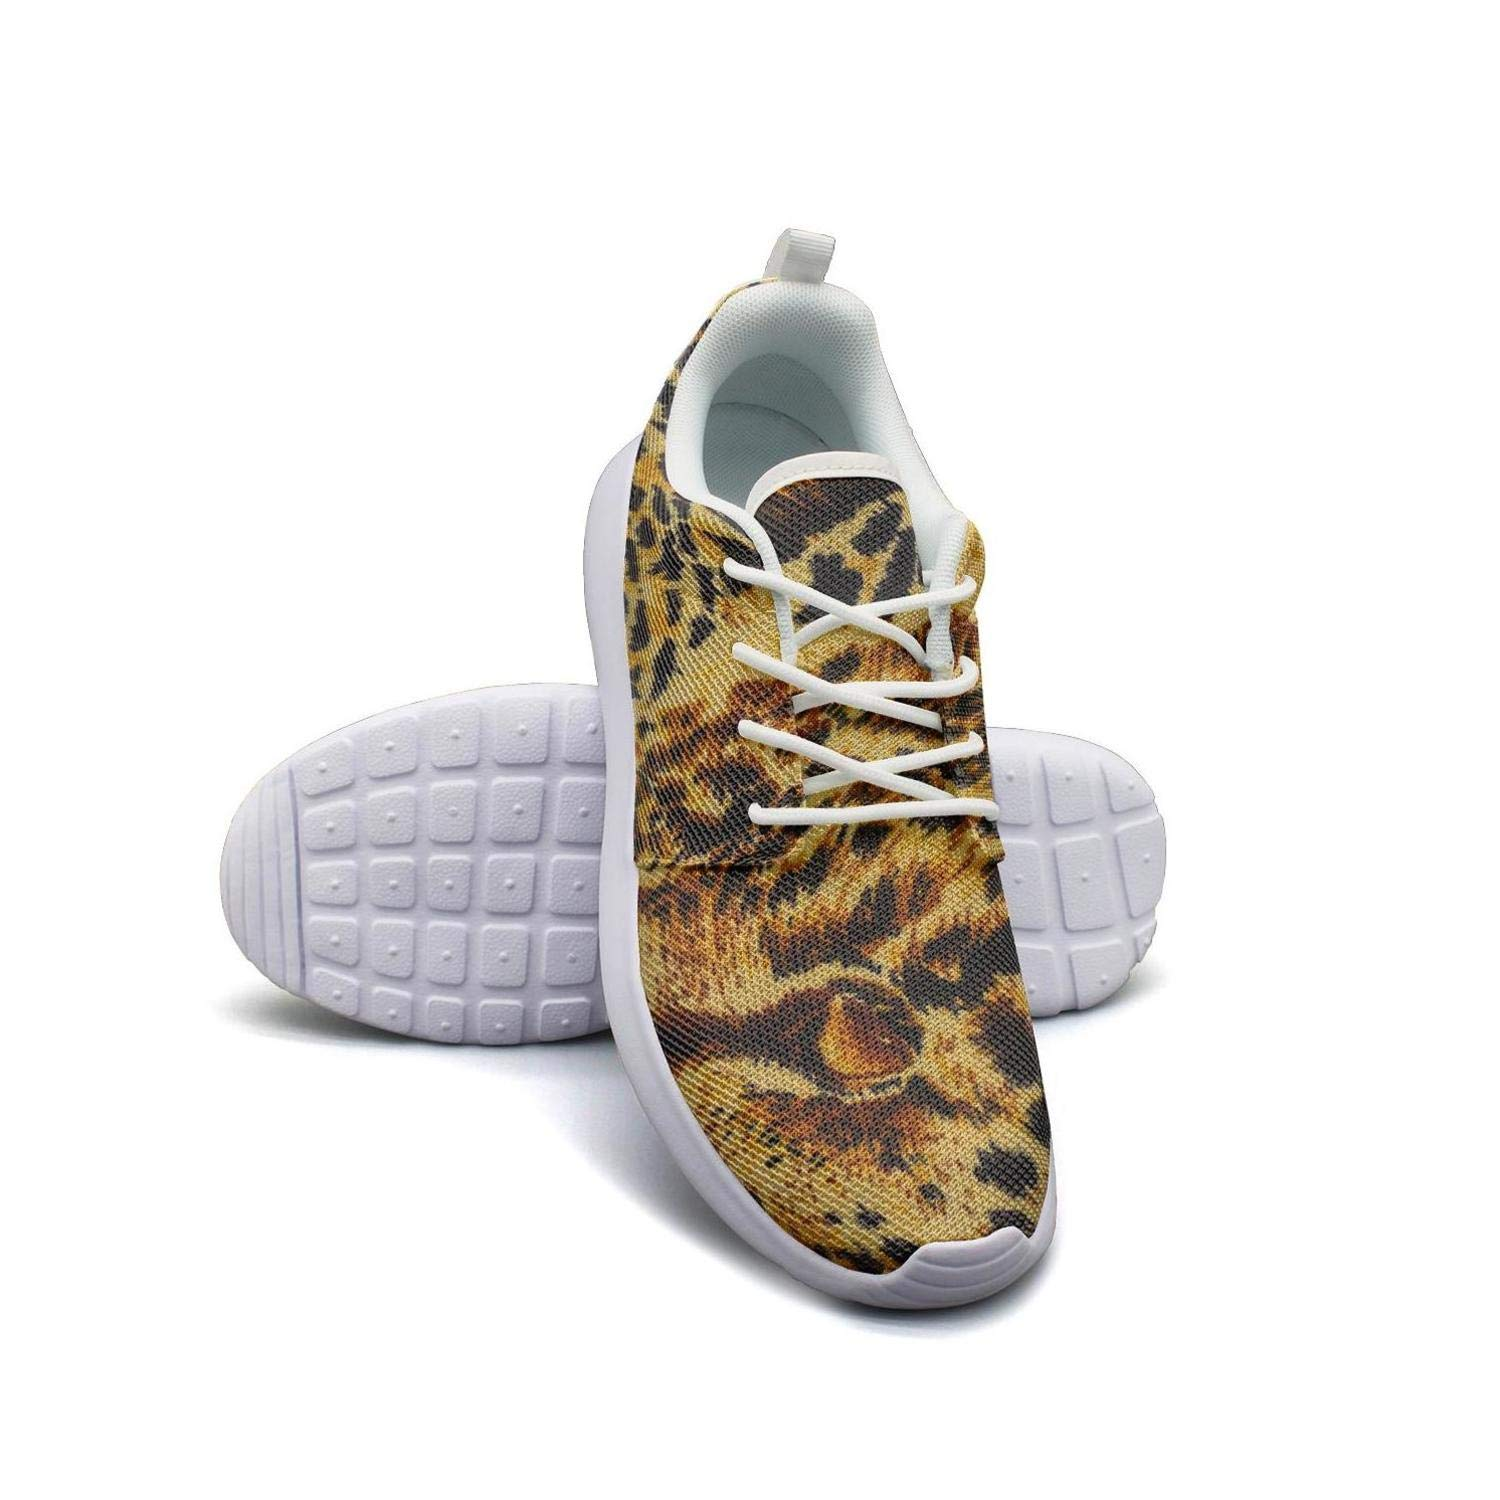 Trainer Comfortable Shoe for Girl Ditto Animal Print Leopard Texture Camouflage women/â/€s Sports Snakers